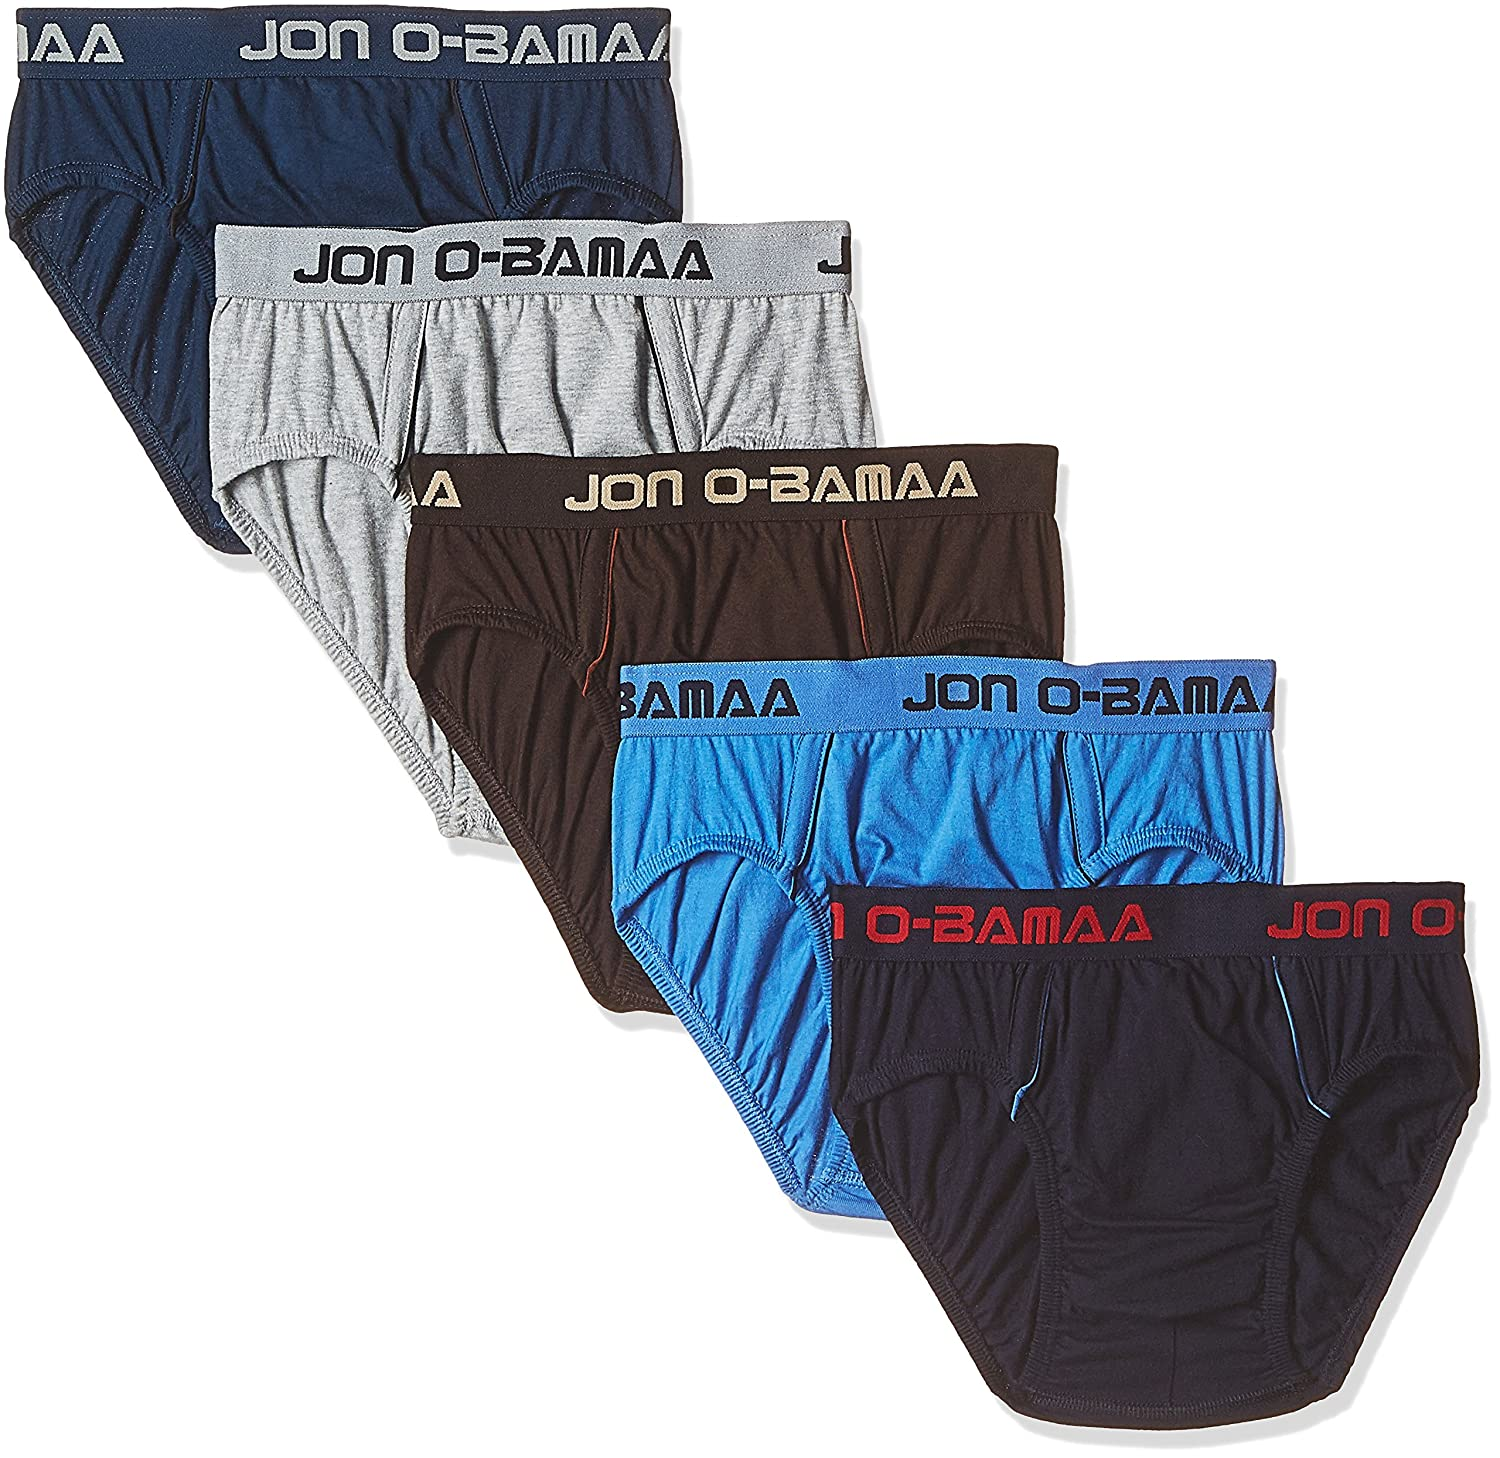 e6263f53af9c Rupa Jon Men's Cotton Brief (Pack of 5) (Colors May Vary) (8903978687872_JN  Brief_95/x-Large_Assorted): Amazon.in: Clothing & Accessories